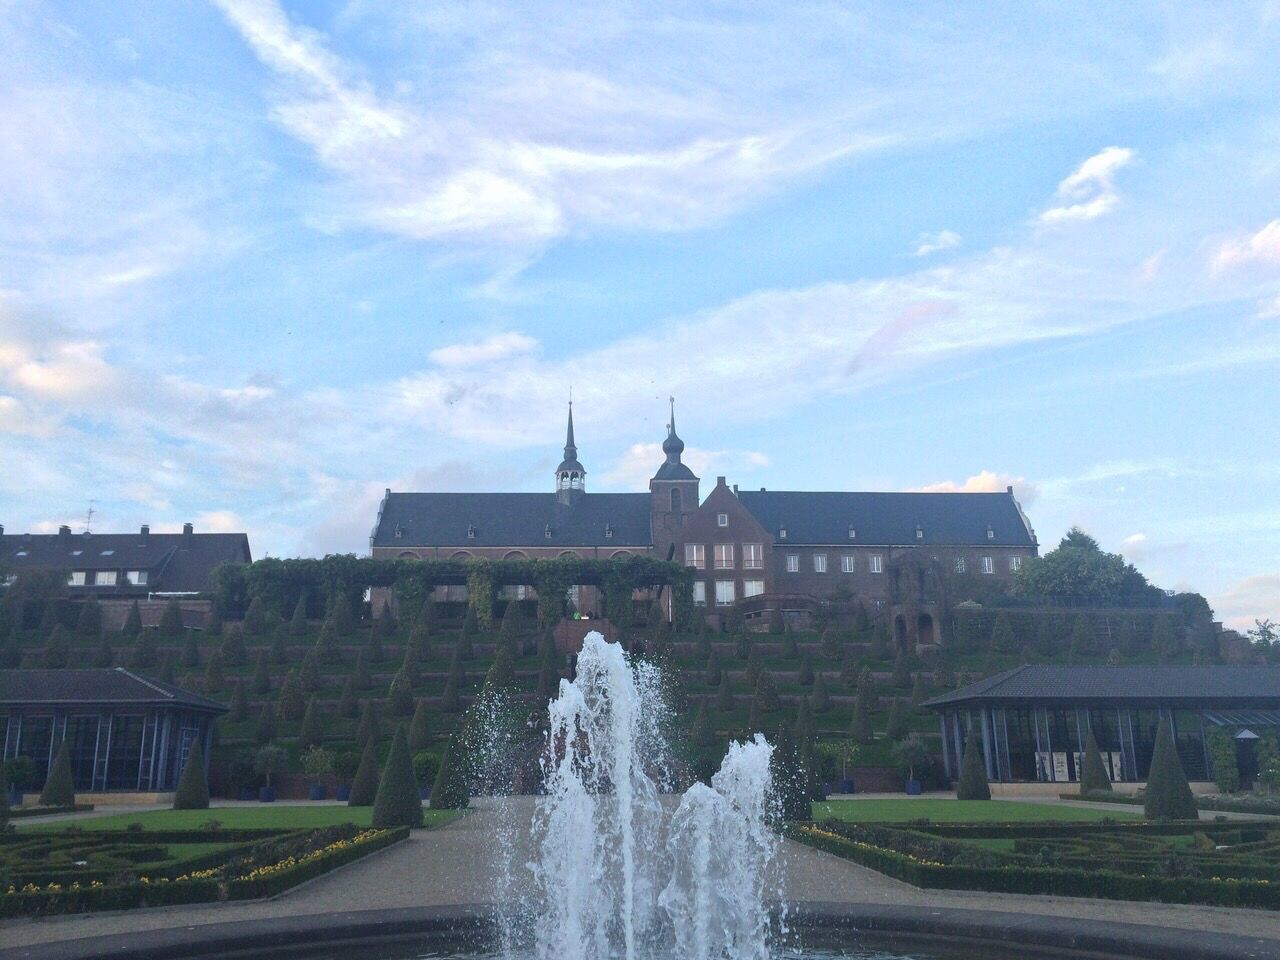 Architecture Building Exterior Built Structure Fountain Sky Water Motion Cloud - Sky Outdoors Day Statue Spraying City No People Nature Cloister